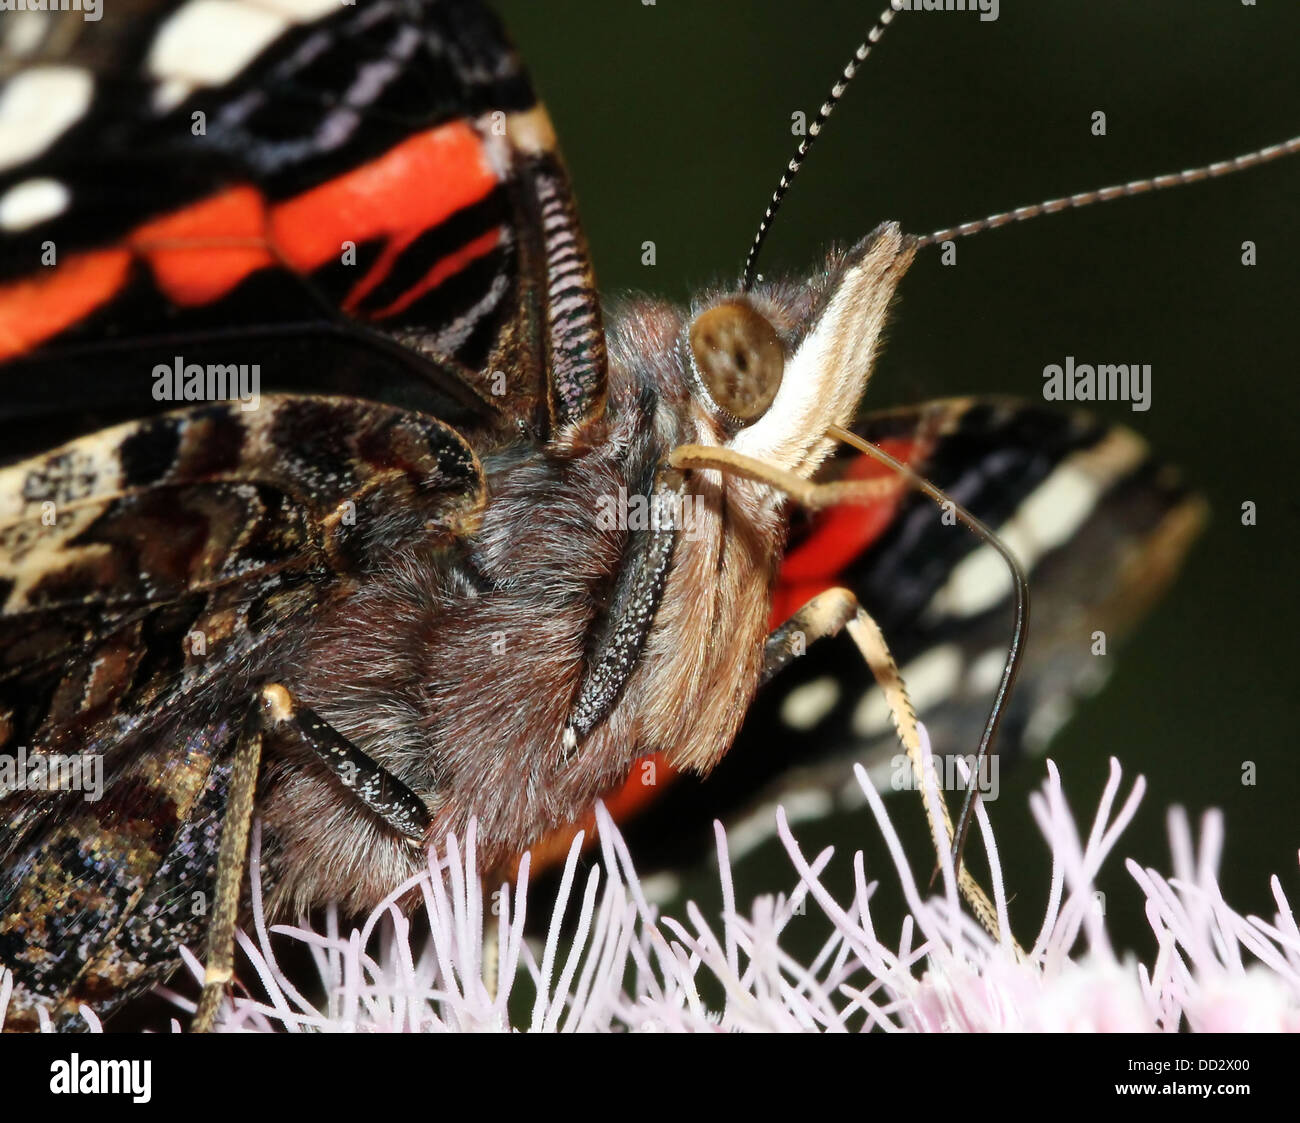 Extreme close-up of the head and upper body of  a Red admiral butterfly (vanessa atalanta) foraging on a hemp agrimony - Stock Image